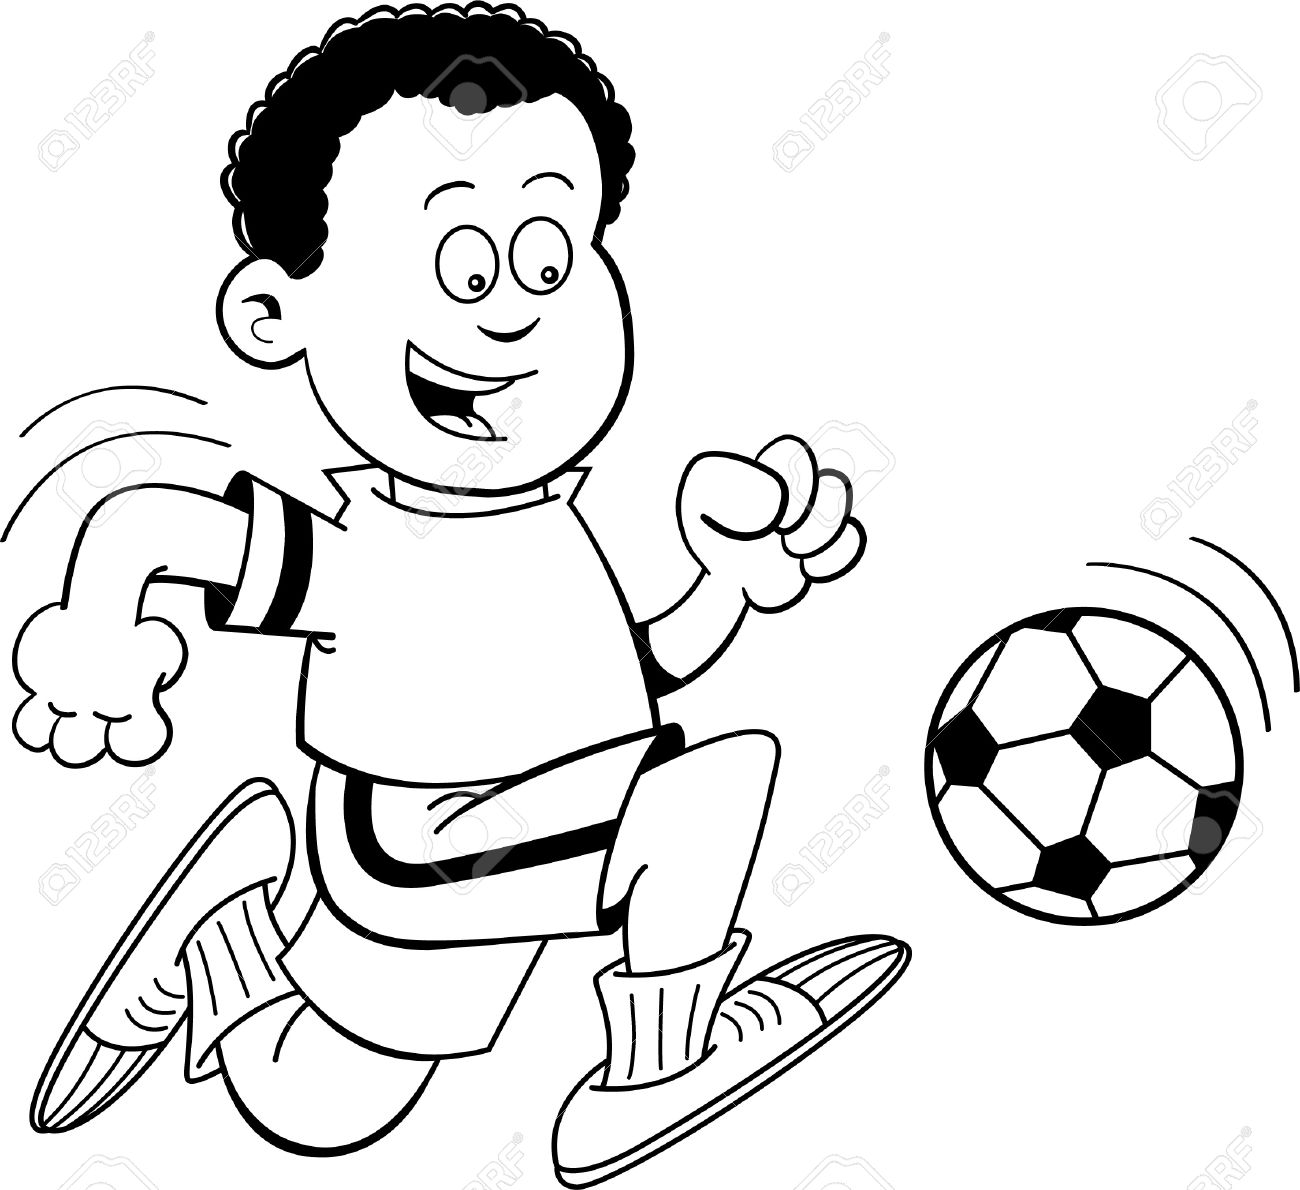 Kicking Ball Clipart Black And White.